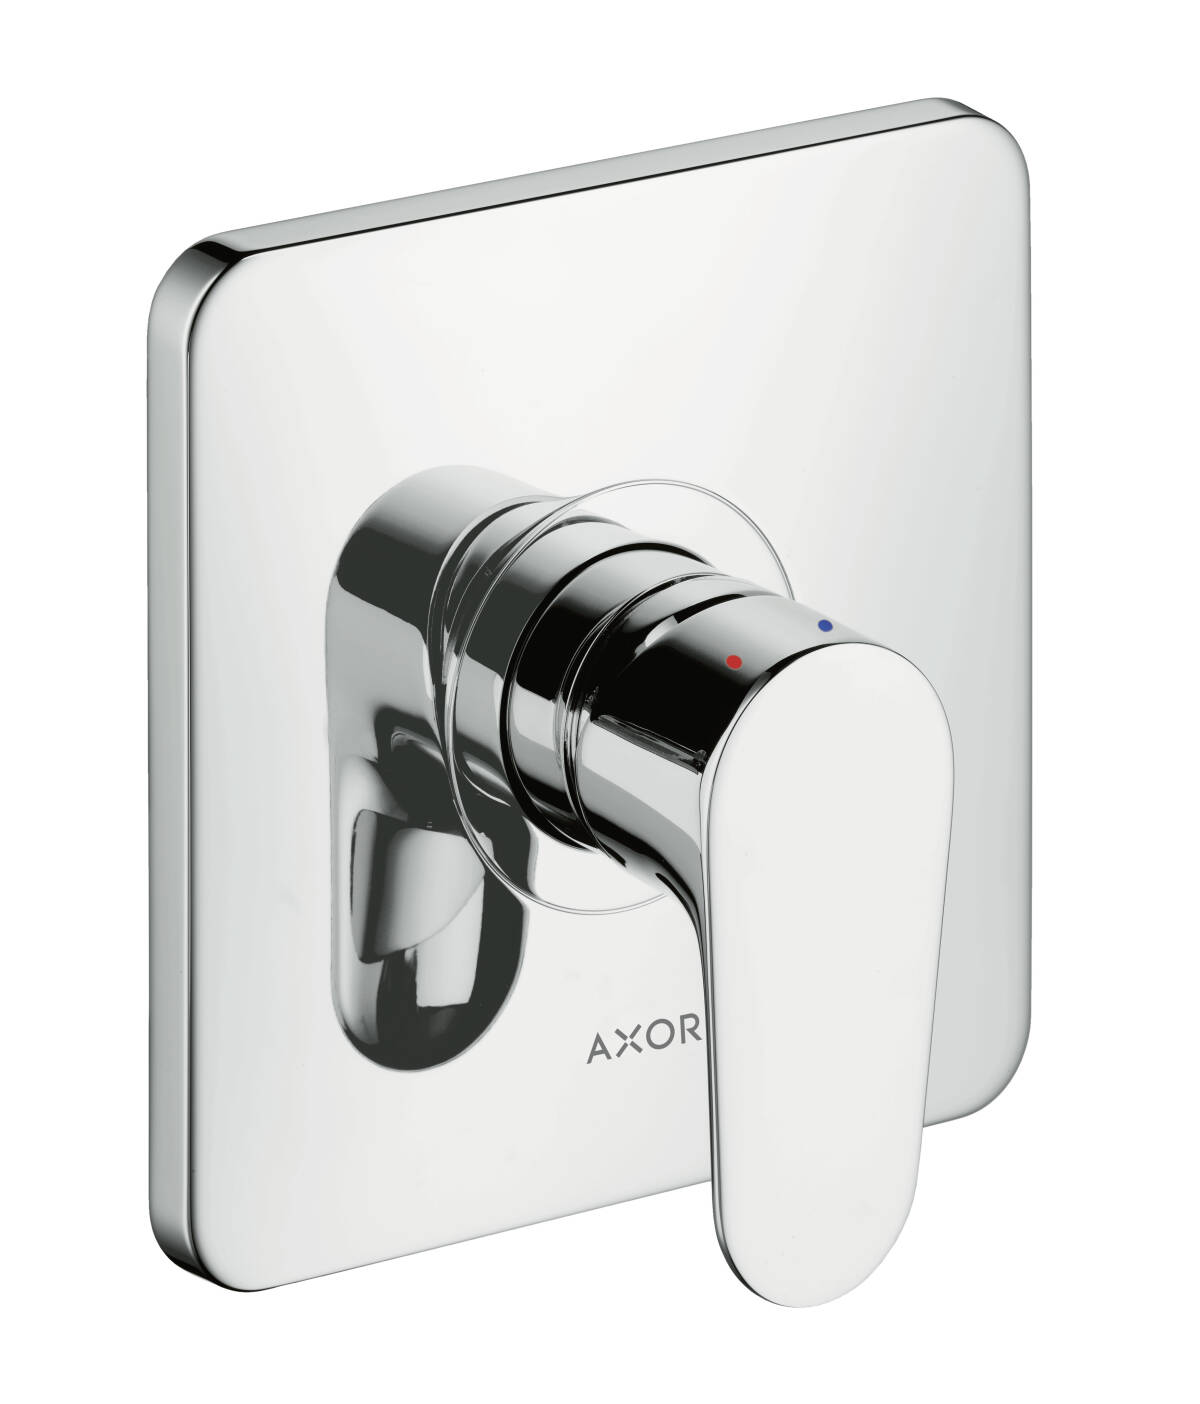 axor citterio m shower mixers 1 outlet stainless steel. Black Bedroom Furniture Sets. Home Design Ideas